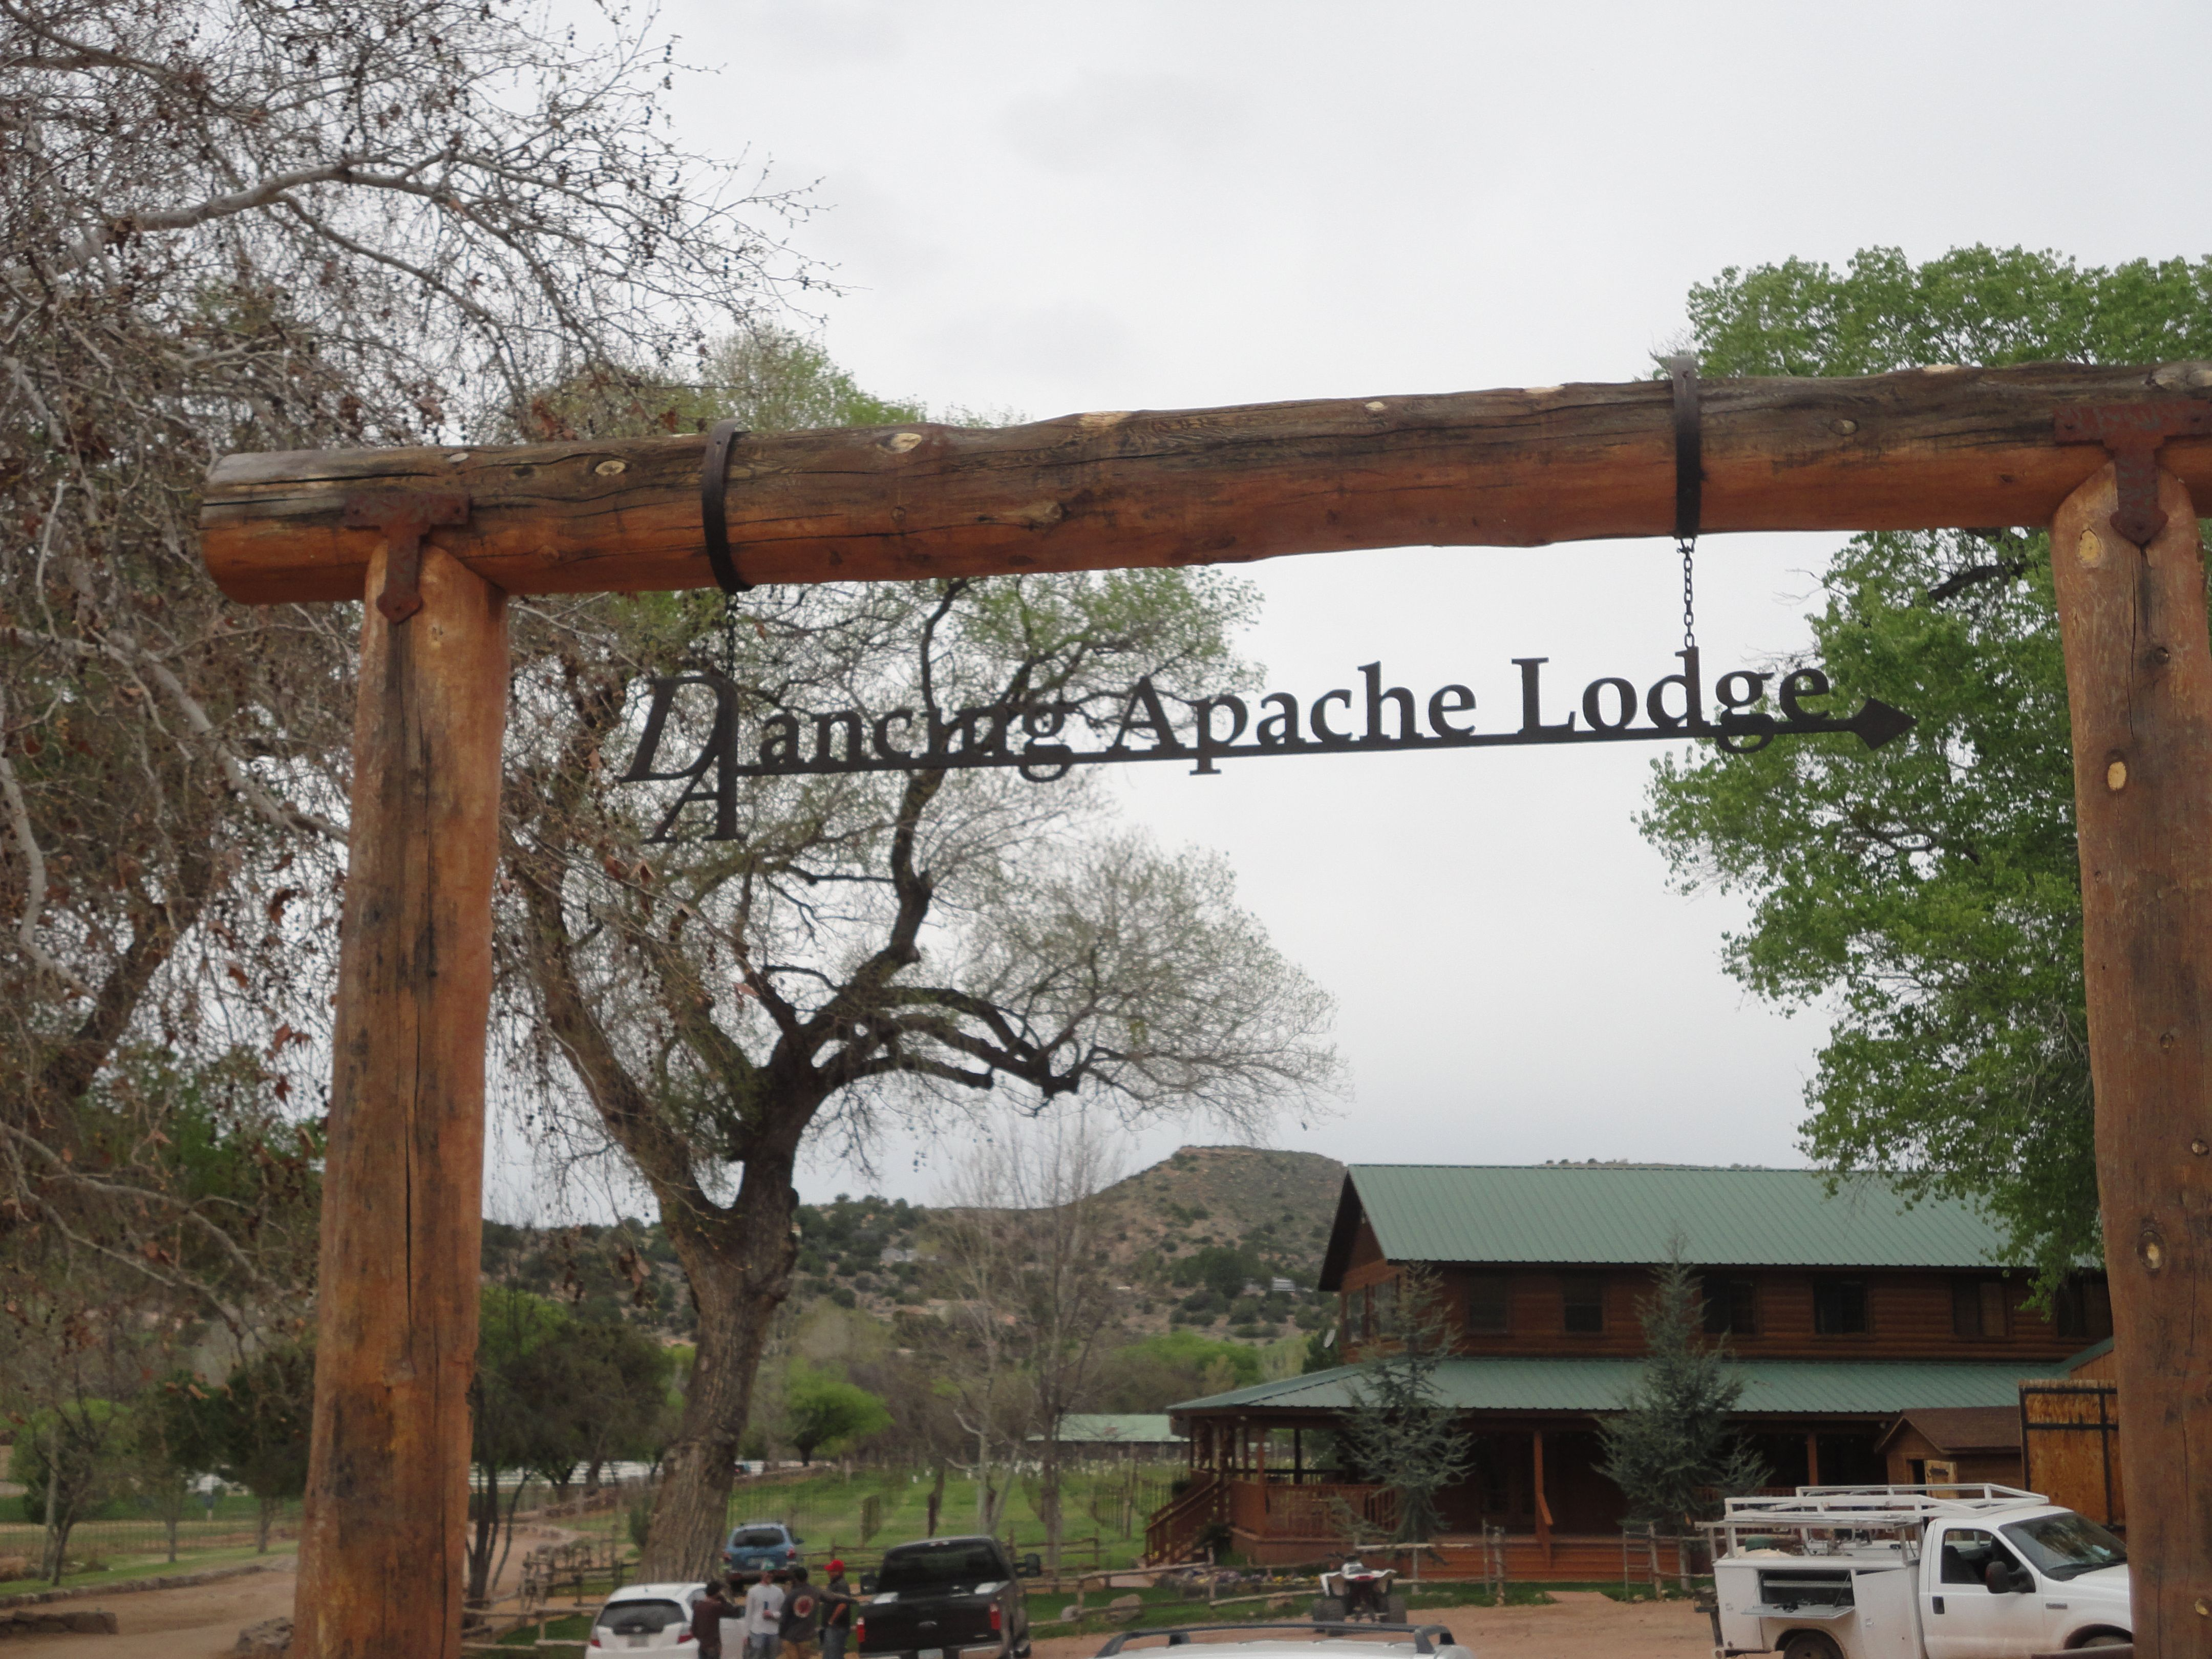 Pin by Verve Events & Tents on Dancing Apache Lodge (With